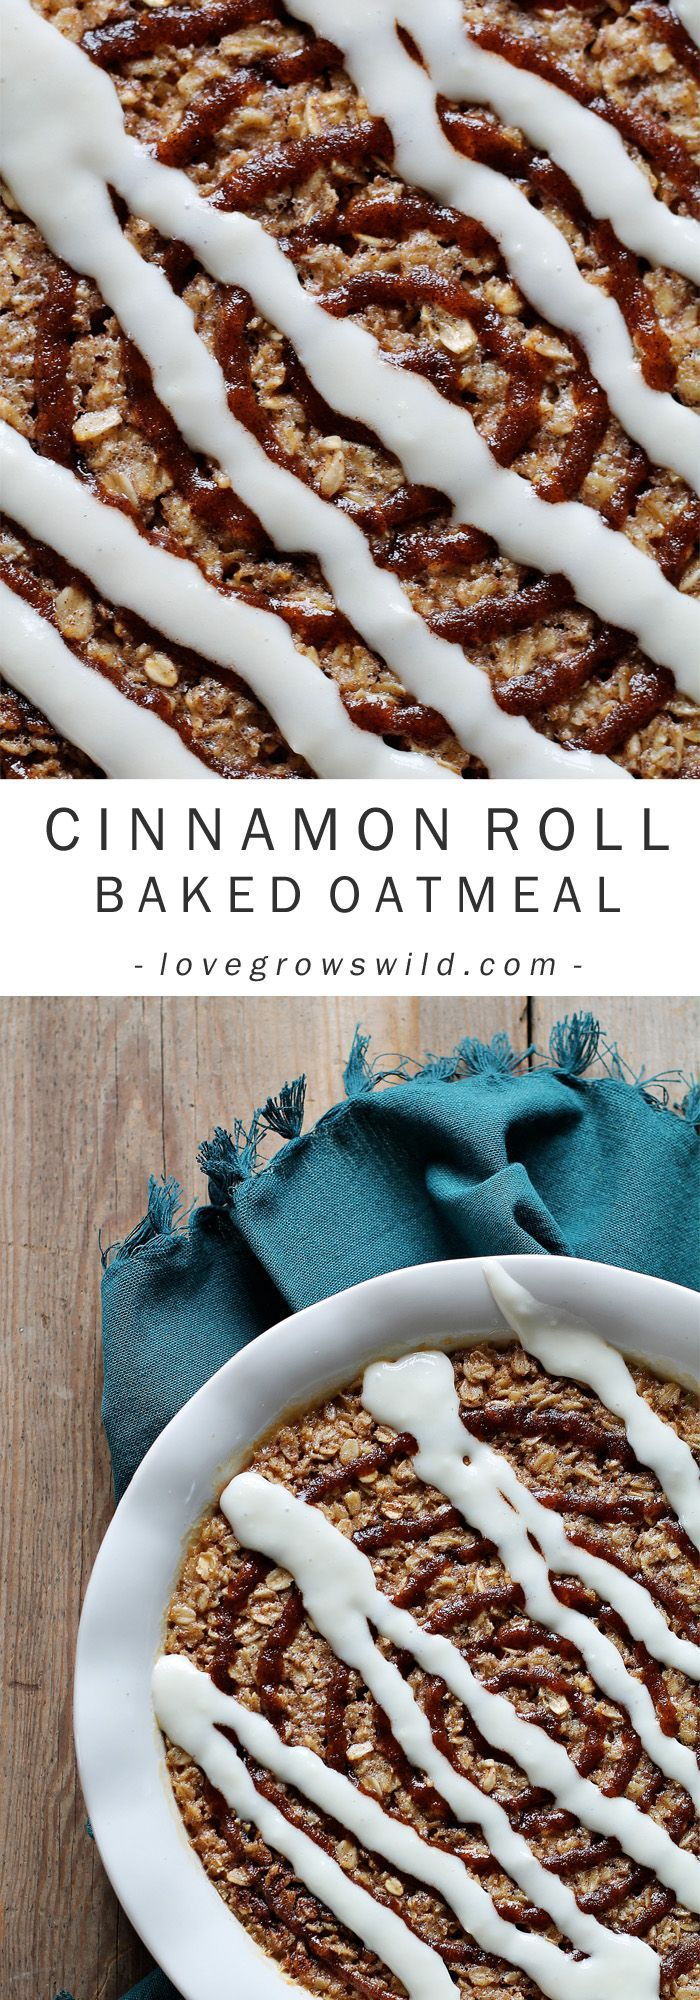 Roll Baked Oatmeal Delicious, easy baked oatmeal with a sweet cinnamon drizzle and cream cheese icing! Cinnamon roll perfection! Get the recipe at Delicious, easy baked oatmeal with a sweet cinnamon drizzle and cream cheese icing! Cinnamon roll perfection! Get the recipe at